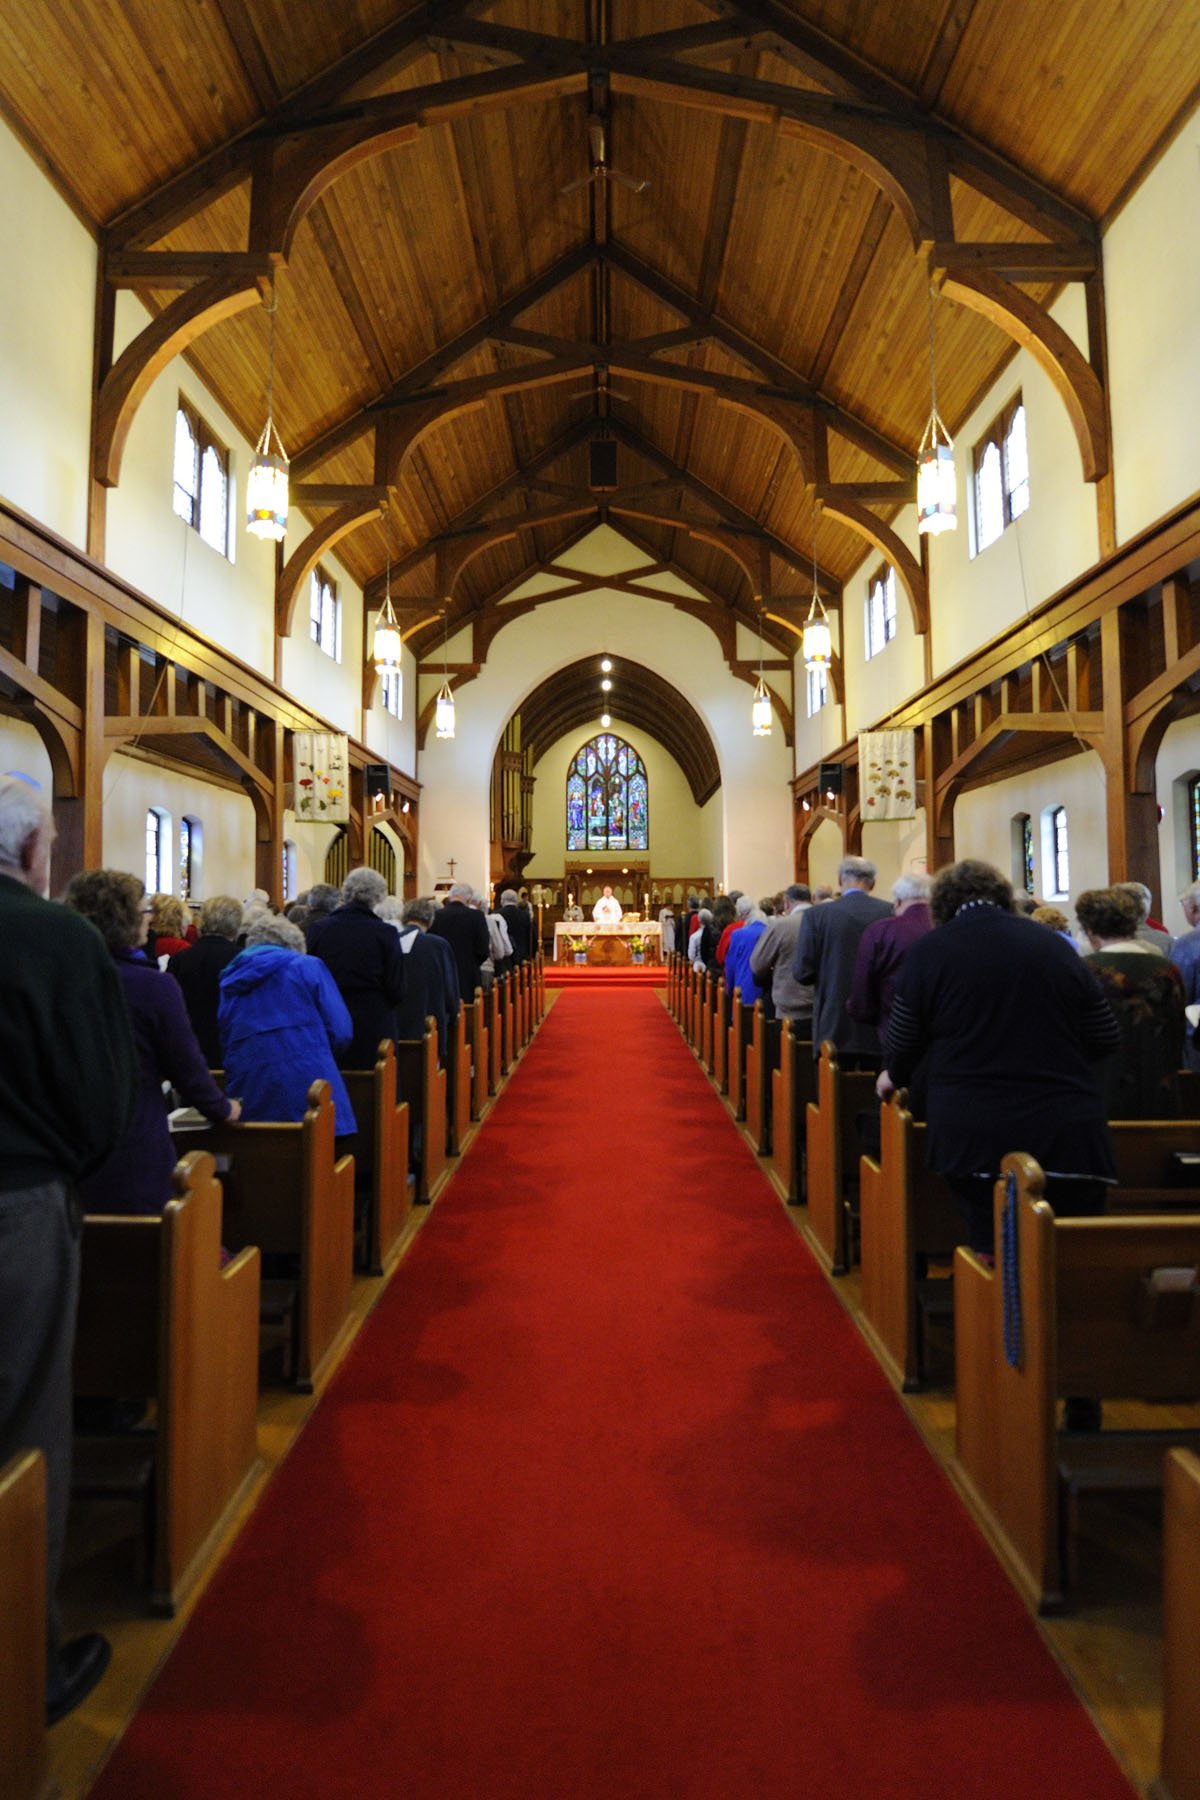 Celebrating its centenary this year, the Cathedral Church of St. Michael and All Angels is the mother church of the Diocese of Kootenay.